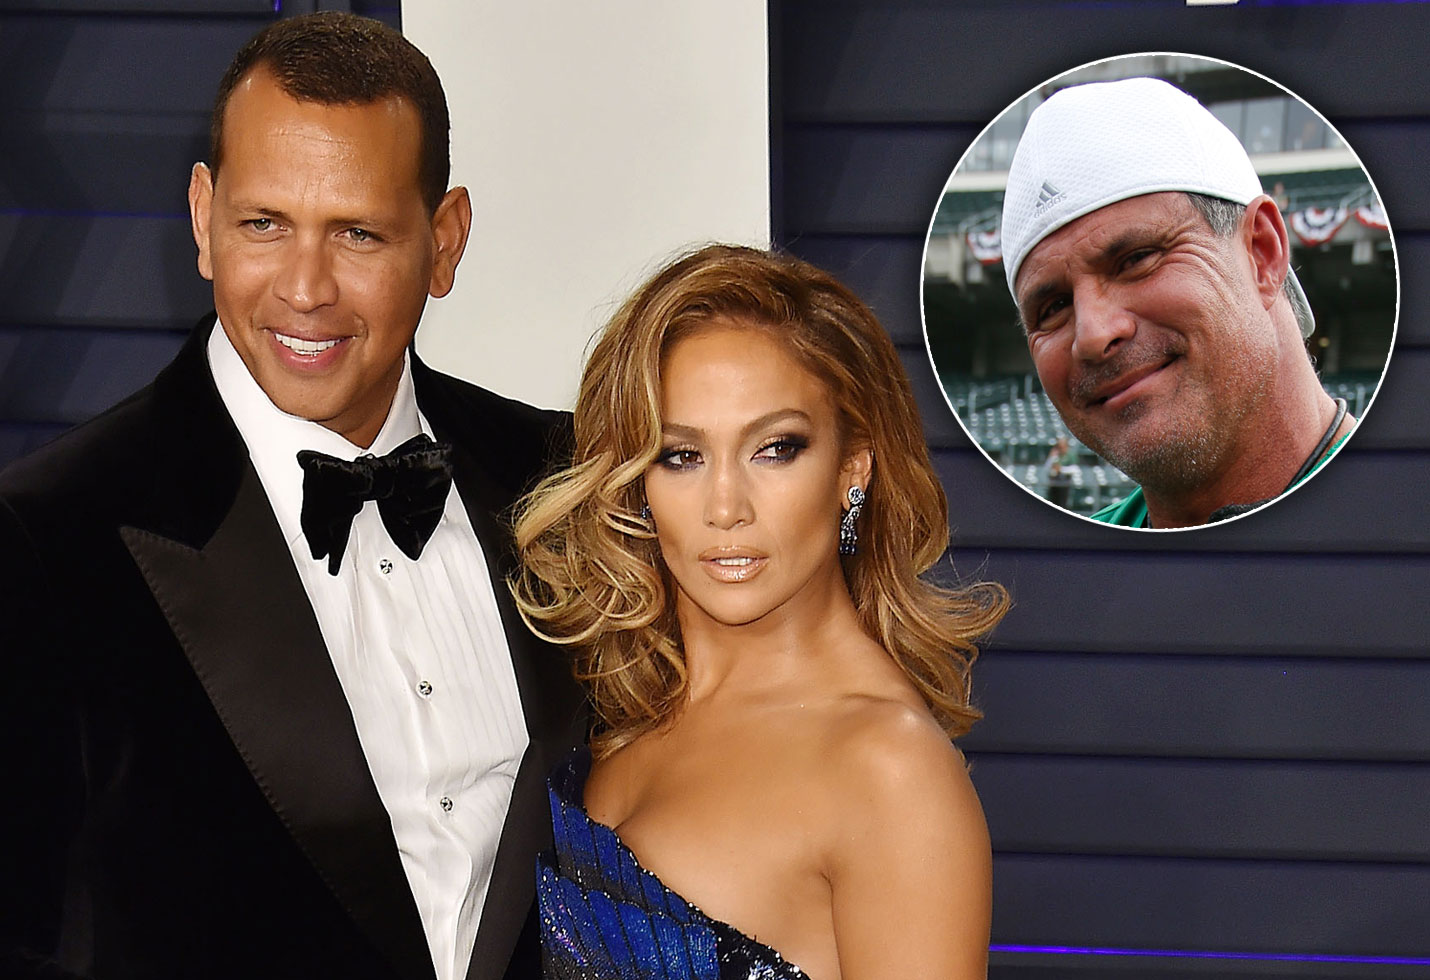 Jose canseco accuses alex rodriguez cheating jennifer lopez engaged